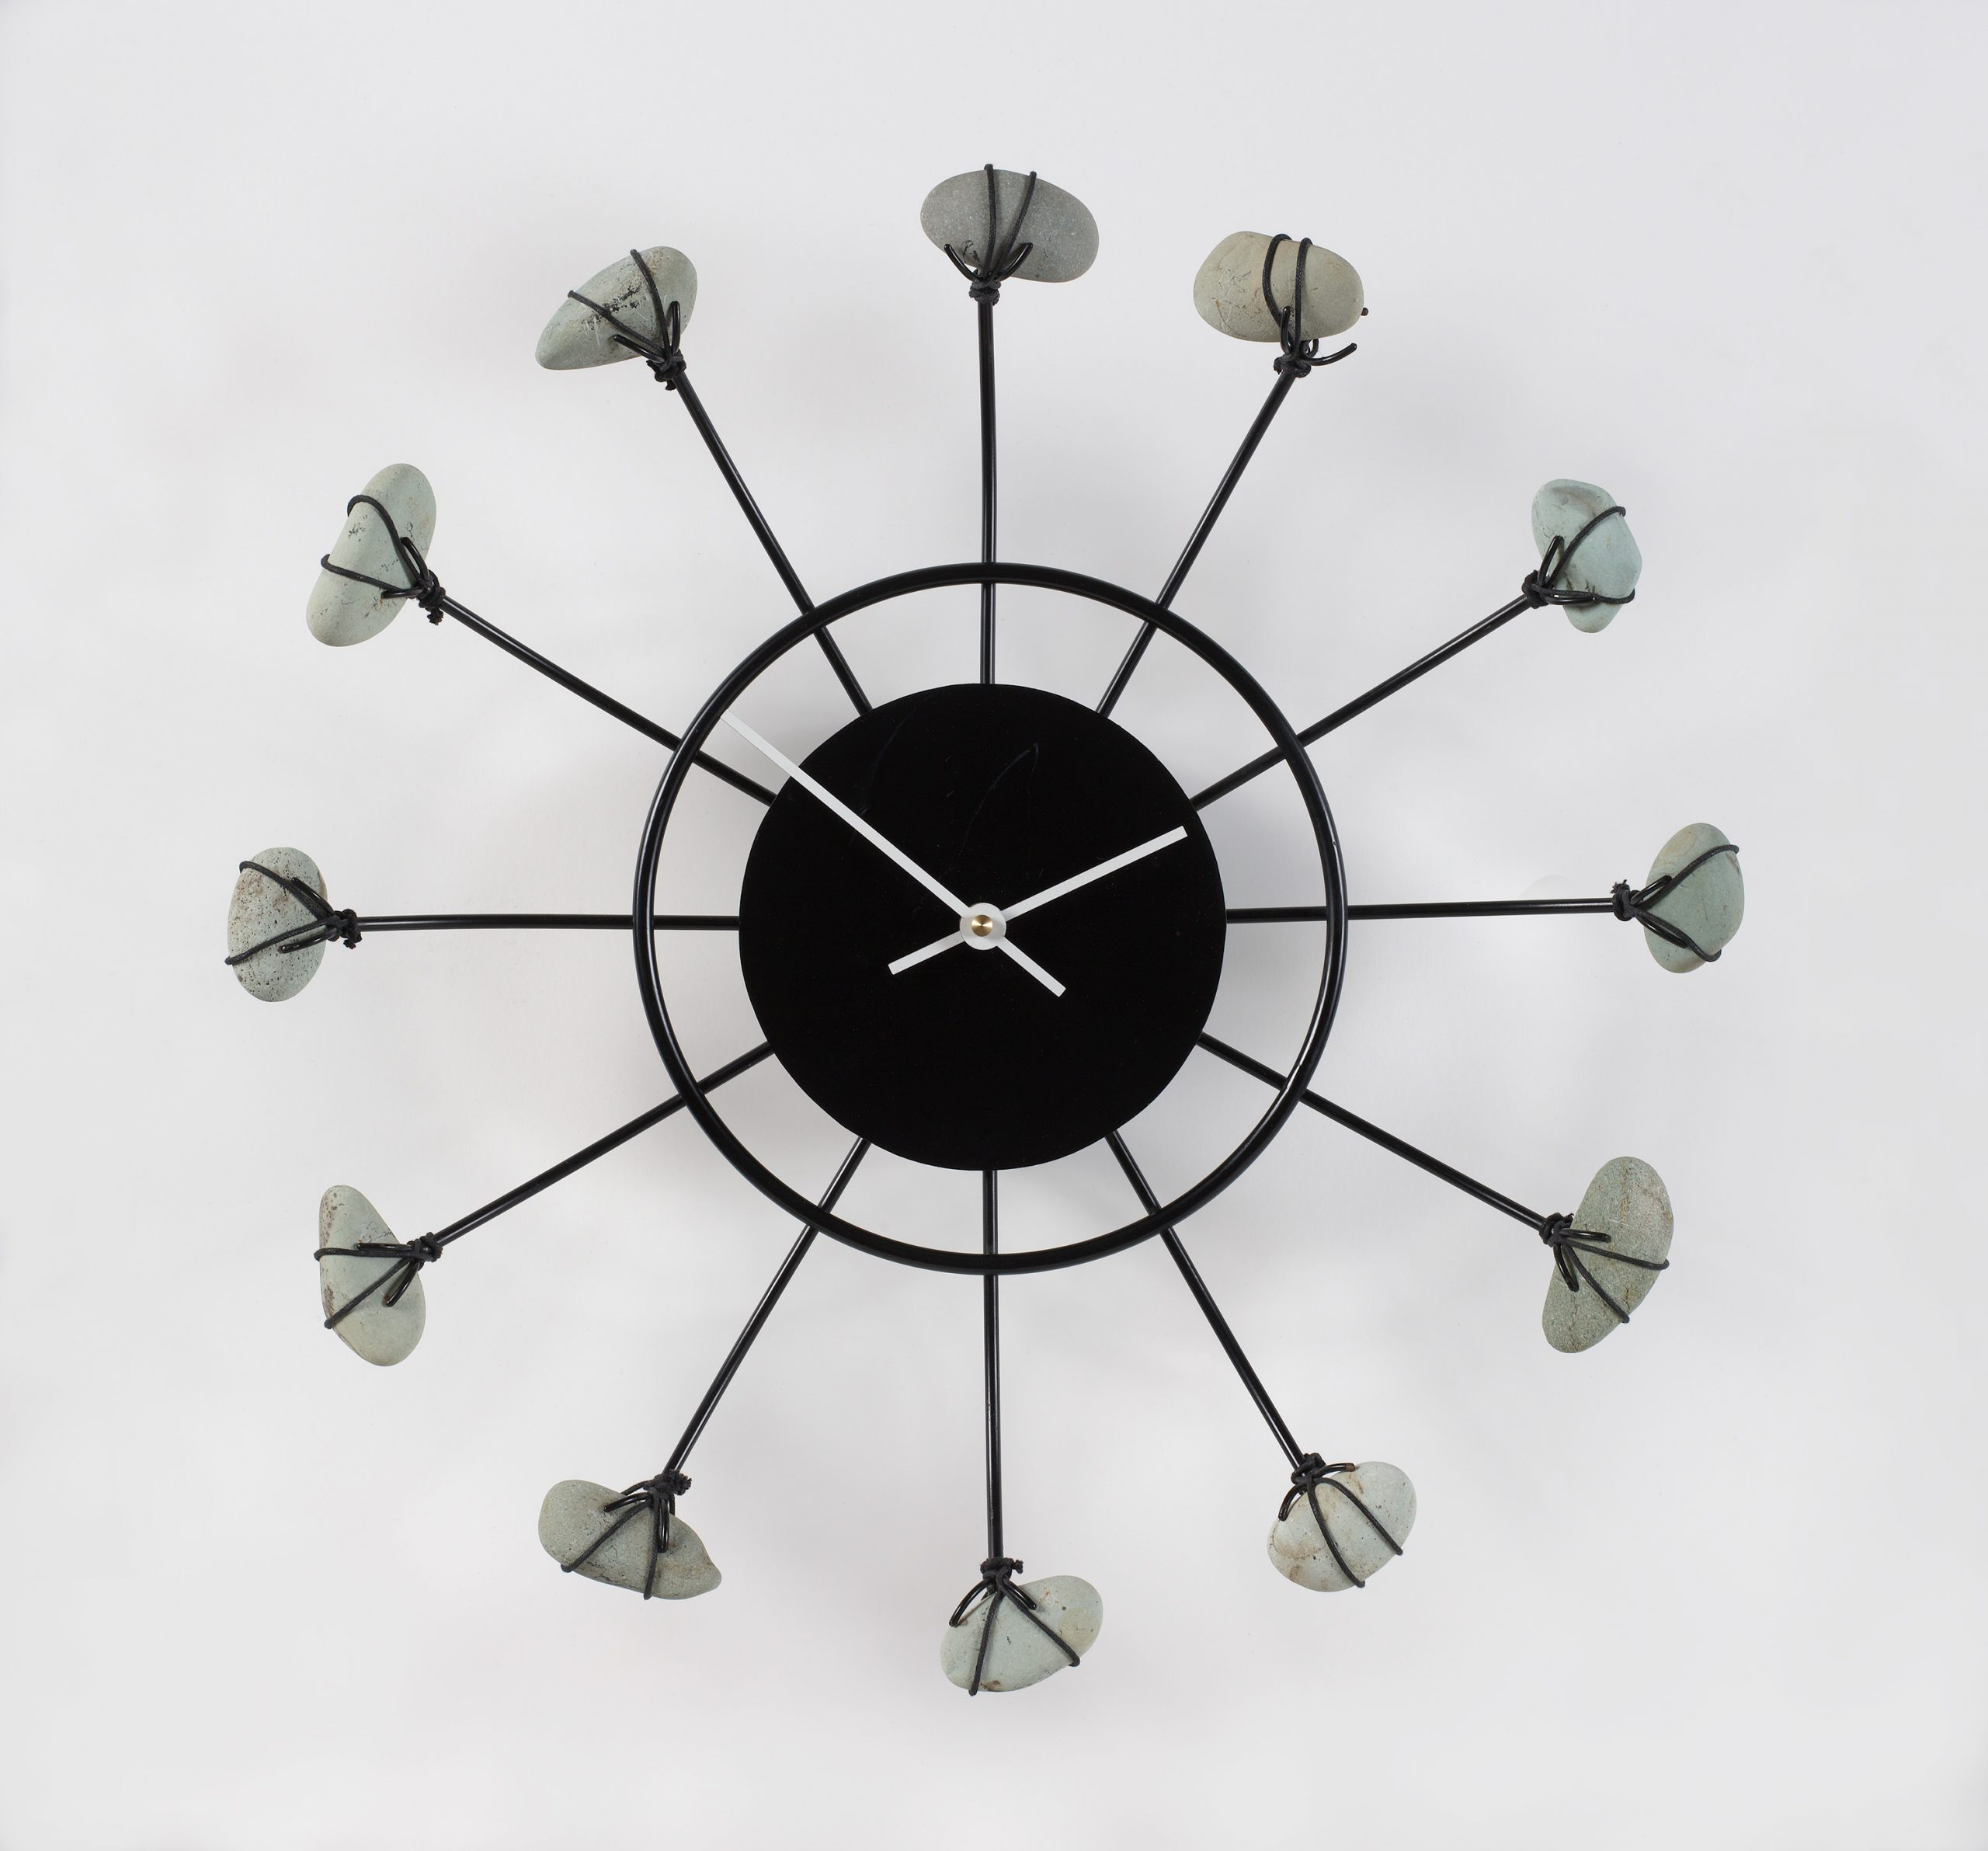 A black metal wall clock with gray stones depicting the hours.